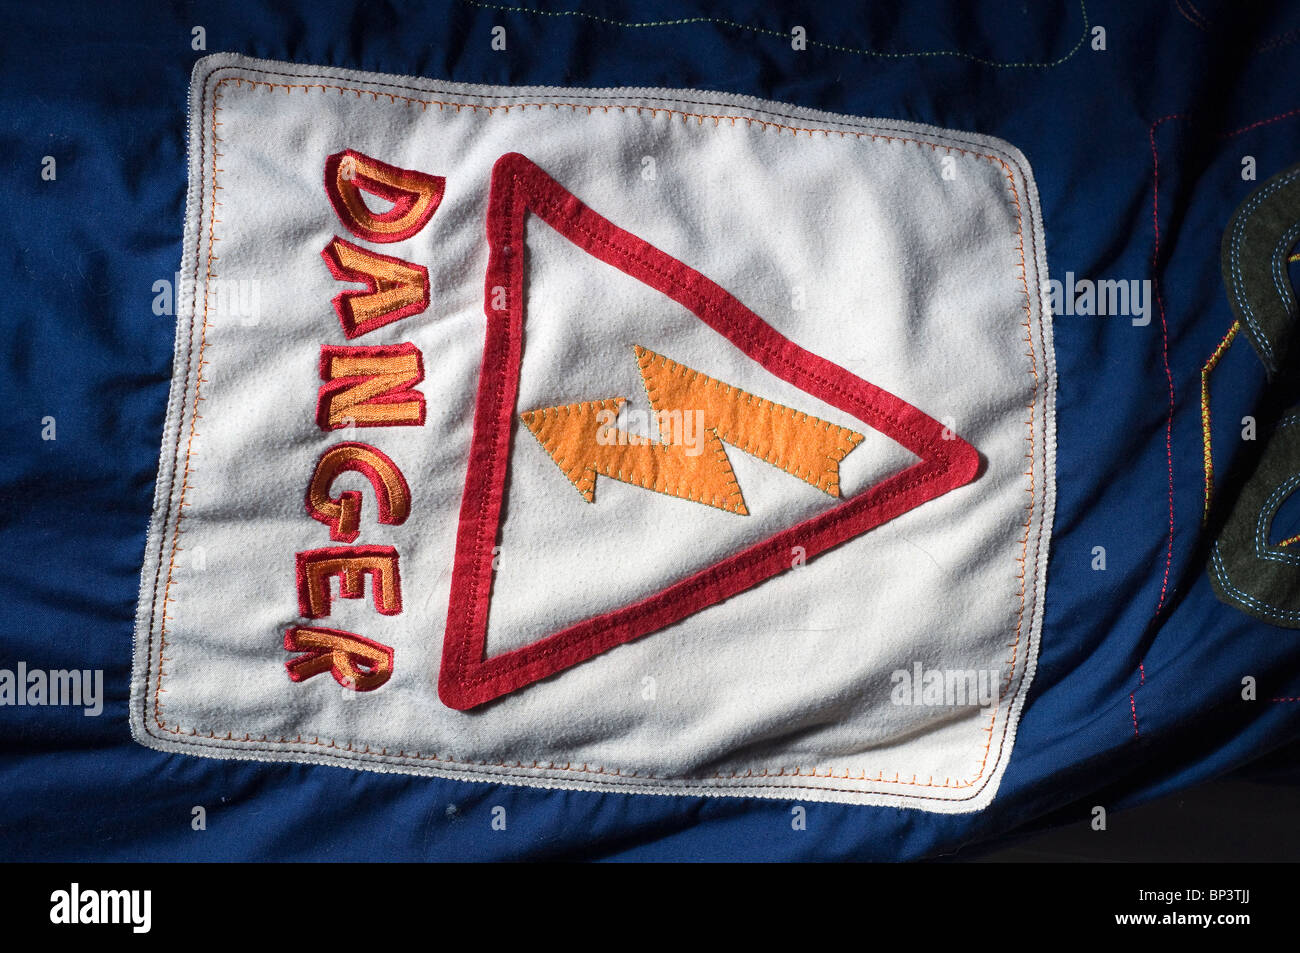 Danger sign on a childs Duvet,sexualization of children in the media - Stock Image